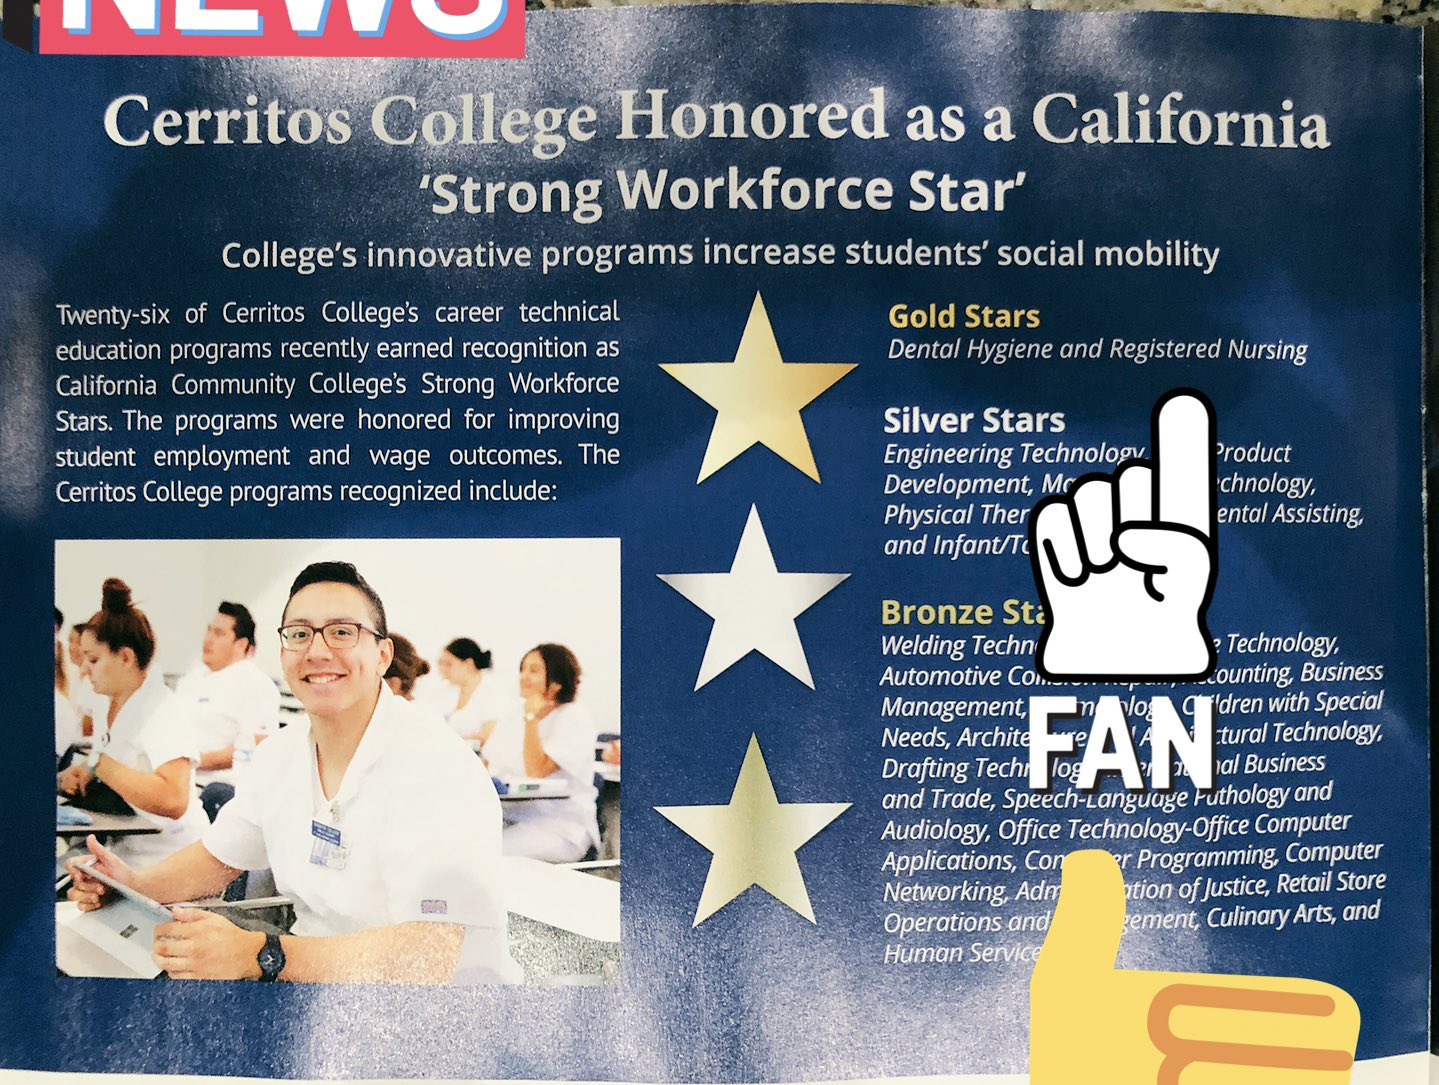 Kbrooks Msned Rn On Twitter Cerritos College Nursing Receives Ca State Recognition Gold Star For Being A Top Vocational Program With High Completion Rates Board Pass Rates And Employment Rates And